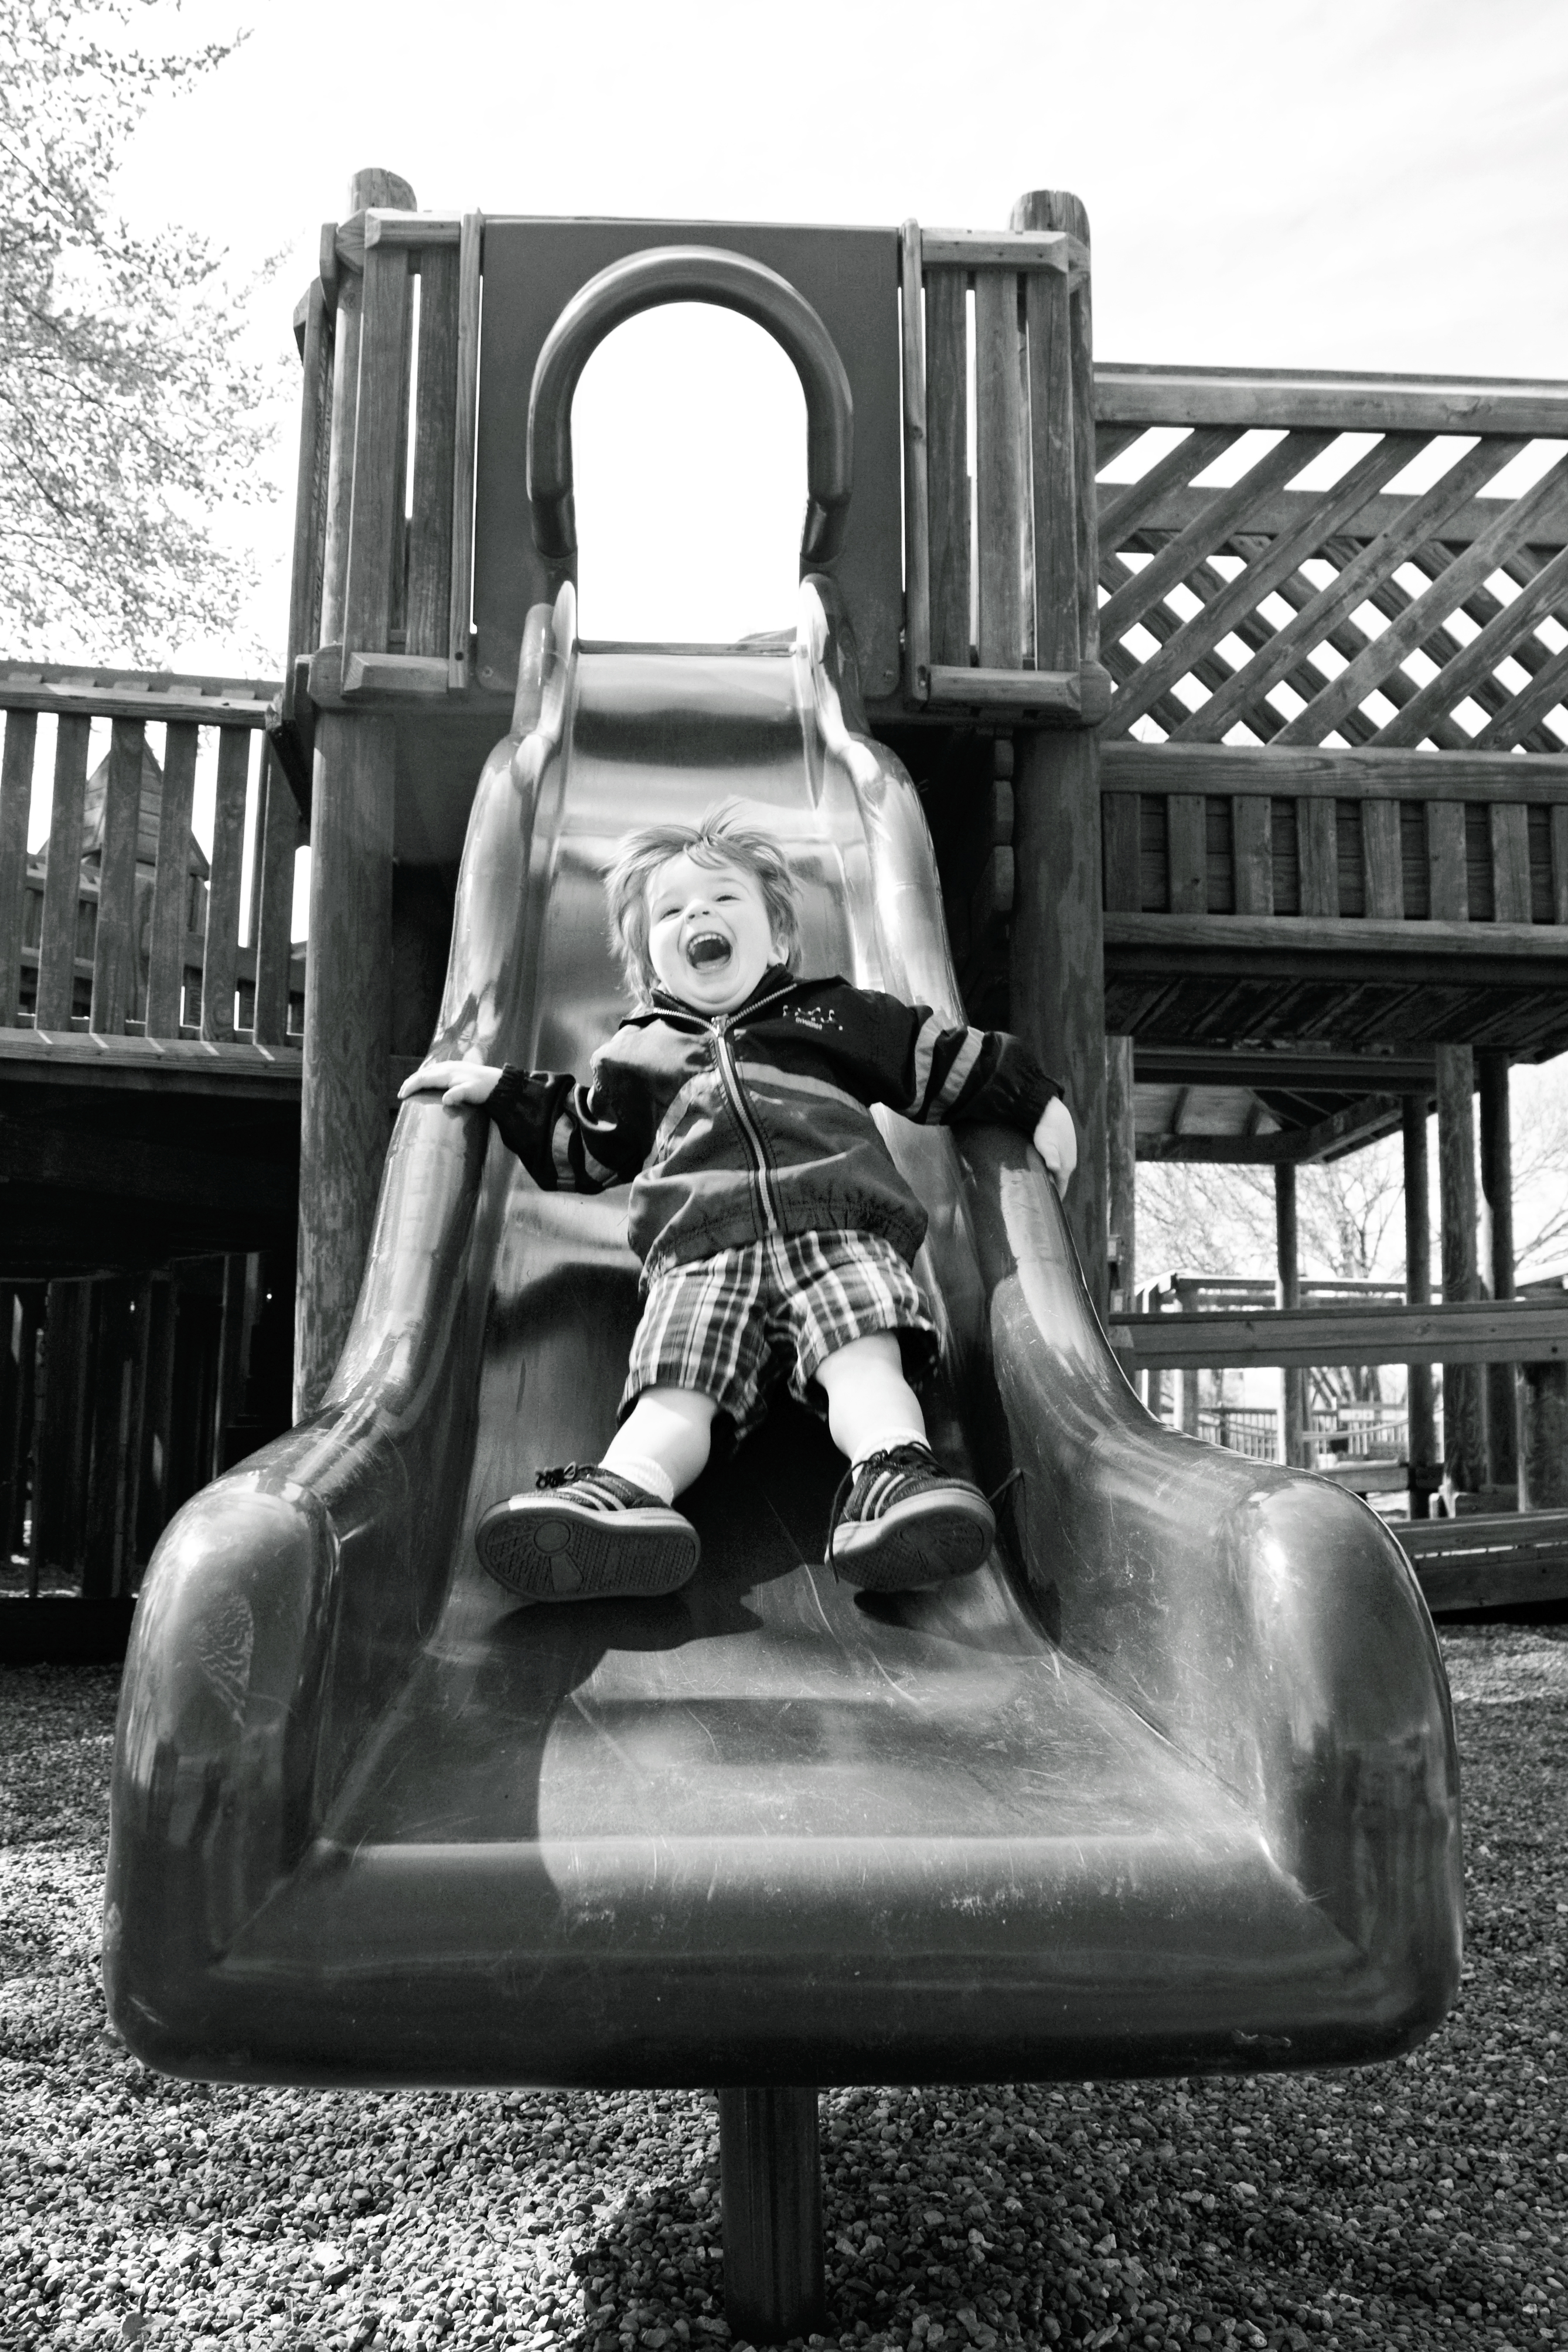 Kid going down slide